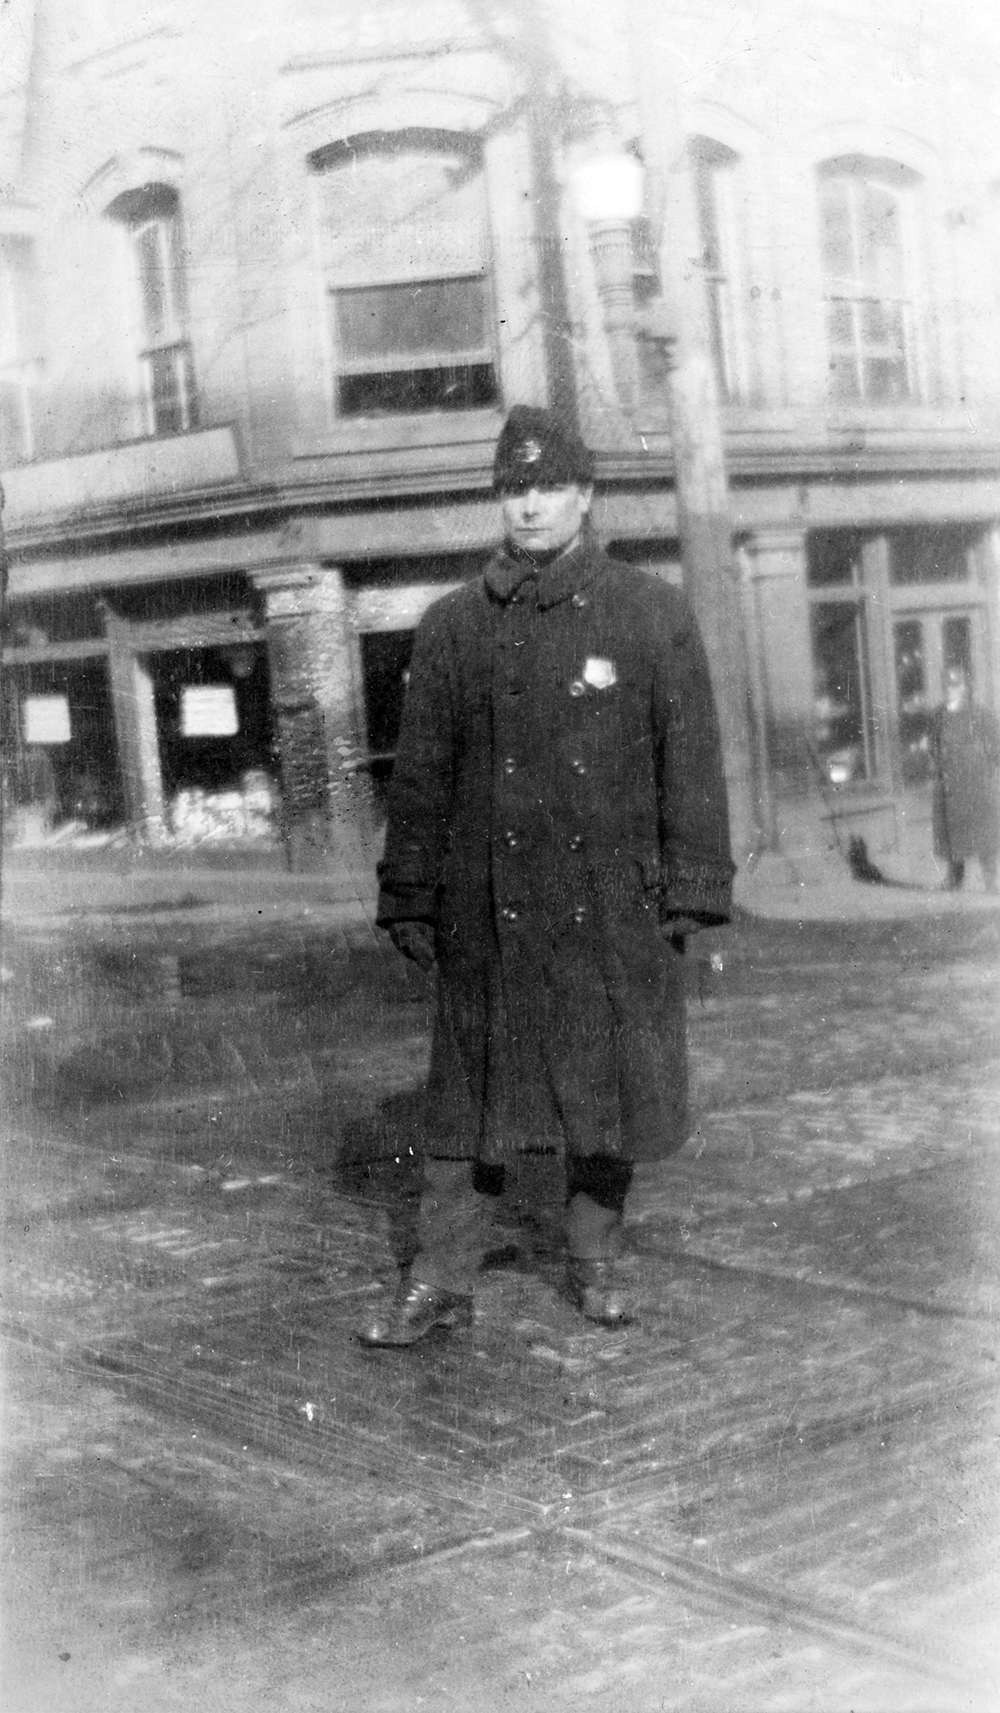 Black and white photo of officer standing in street